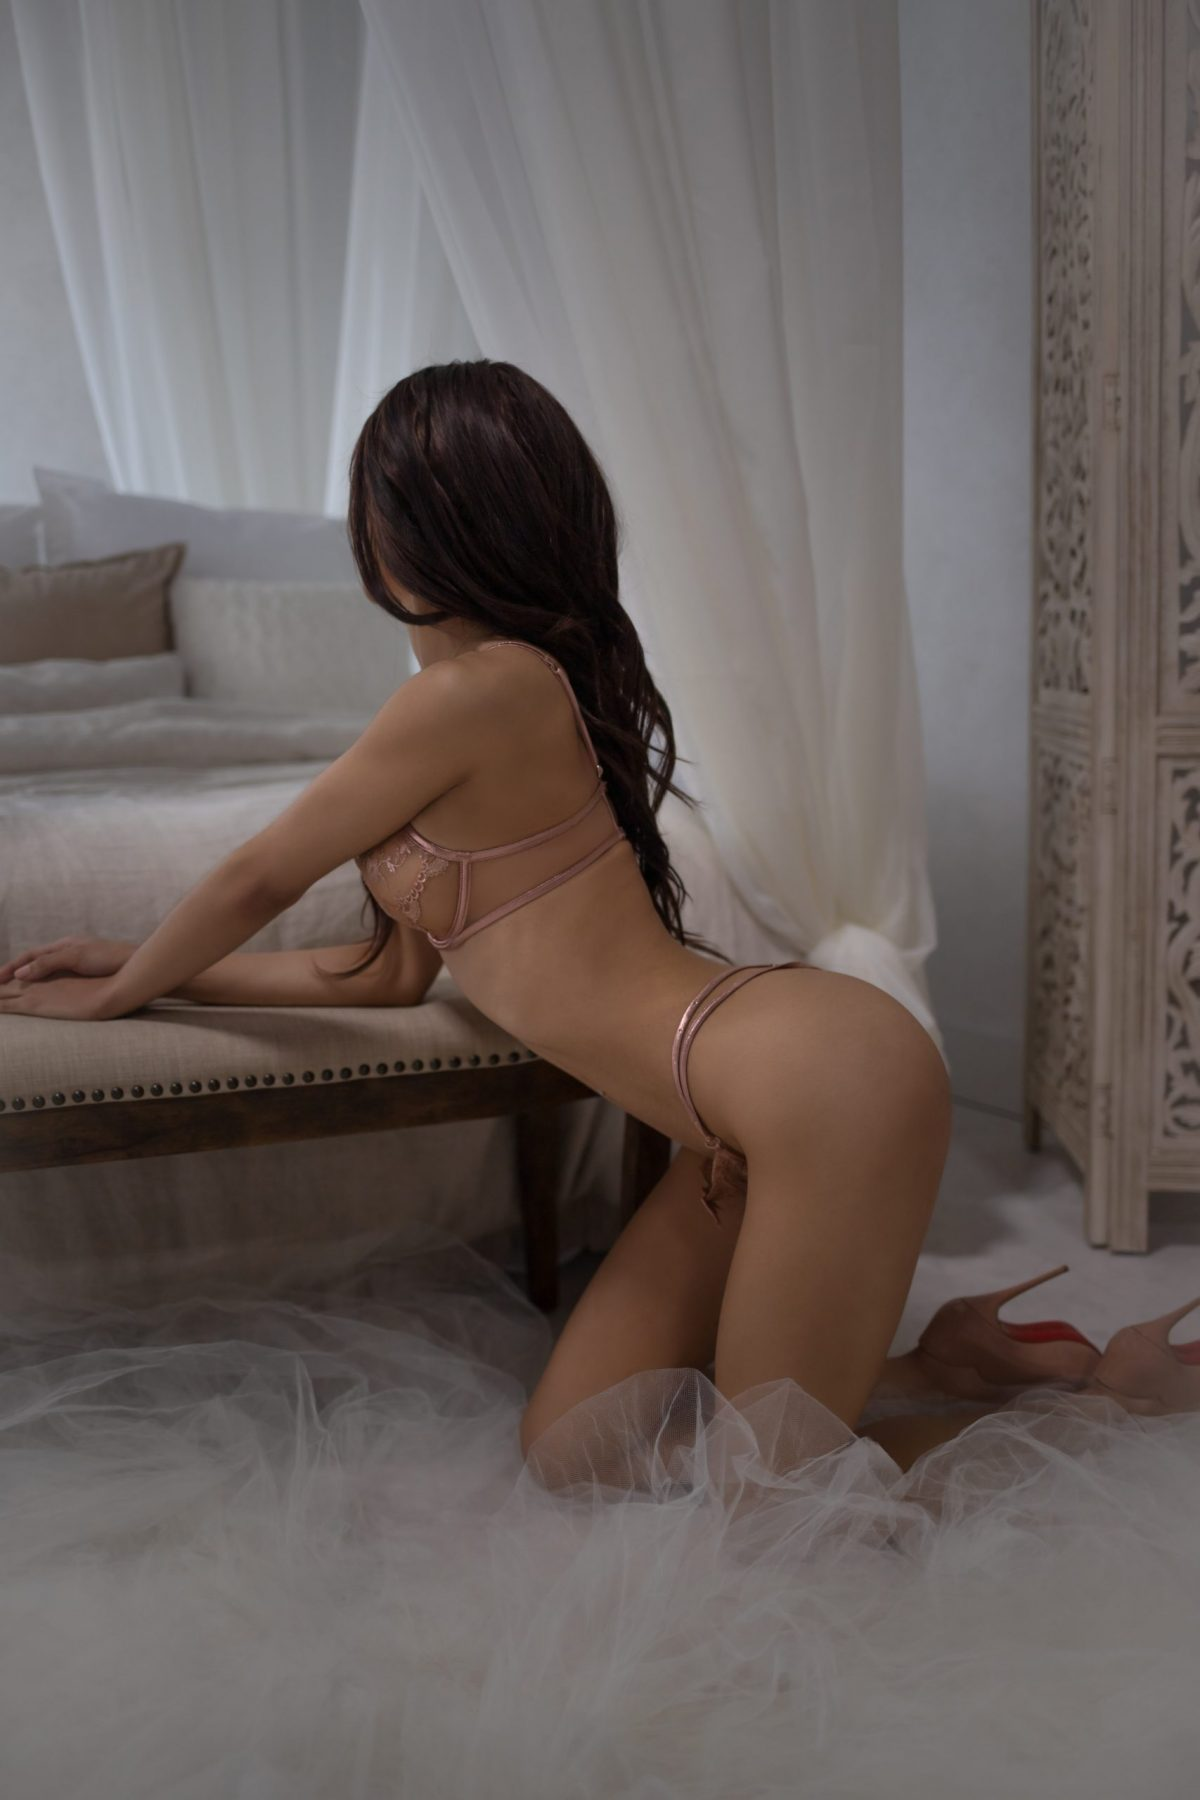 Toronto escorts companion upscale Bianca Interests Duo Couple-friendly Non-smoking Age Young Figure Slender Petite Breasts Enhanced Hair Raven-Haired Ethnicity Latina Black Tattoos Small